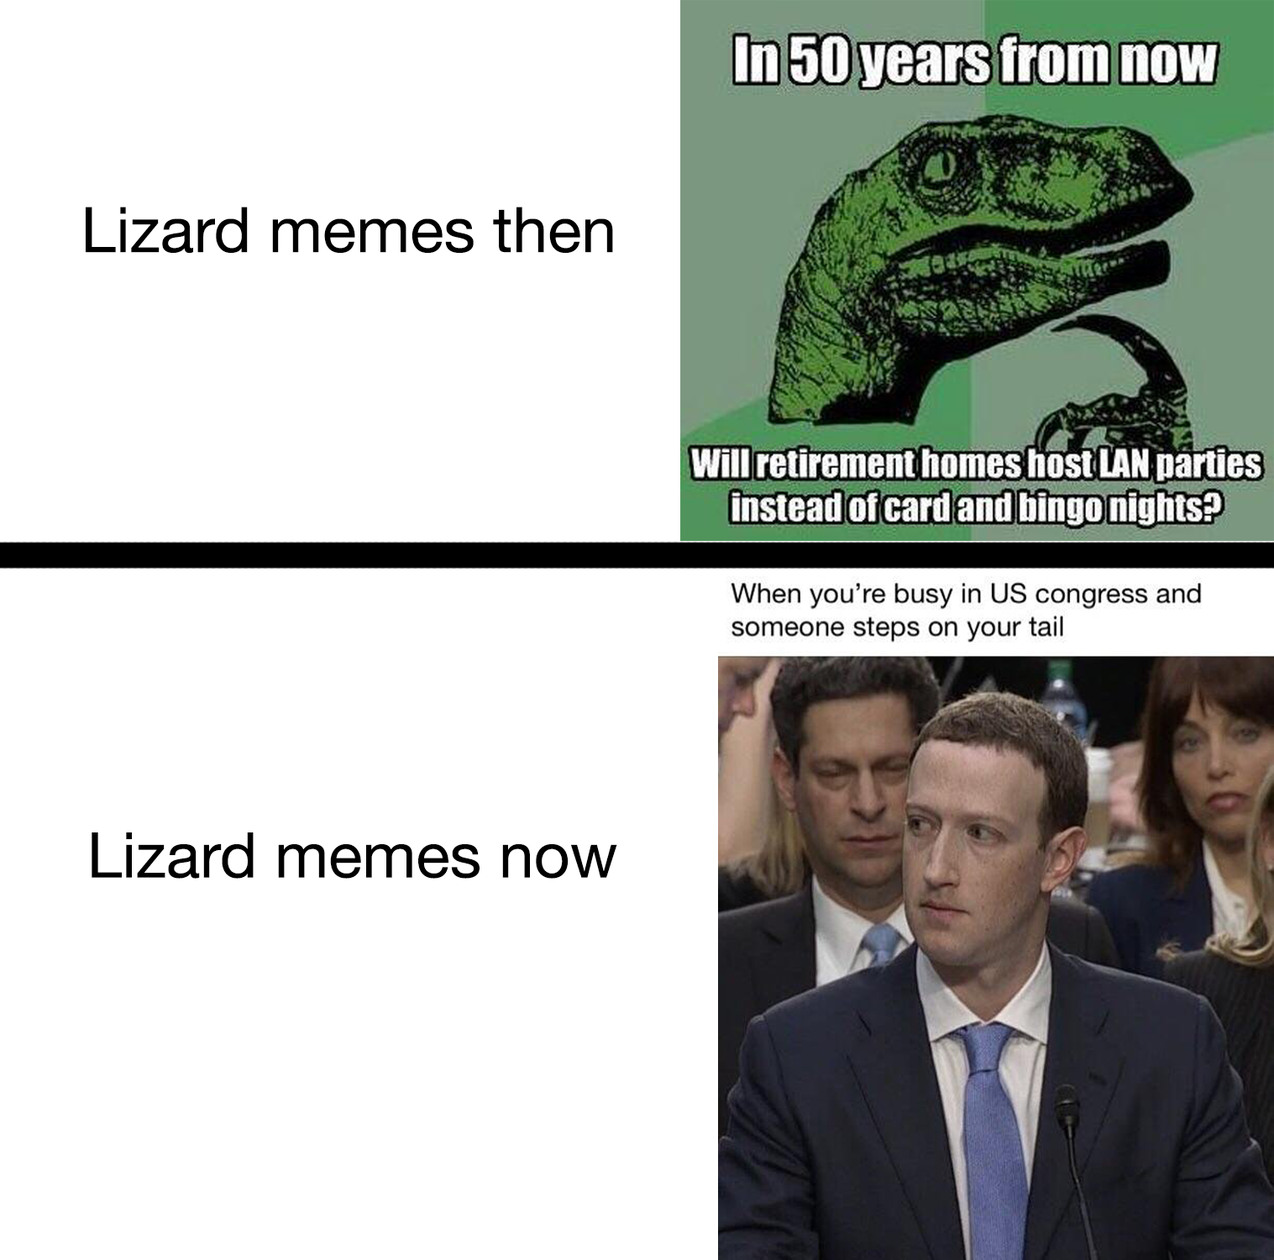 Government is lizards, Alex jones is god - meme